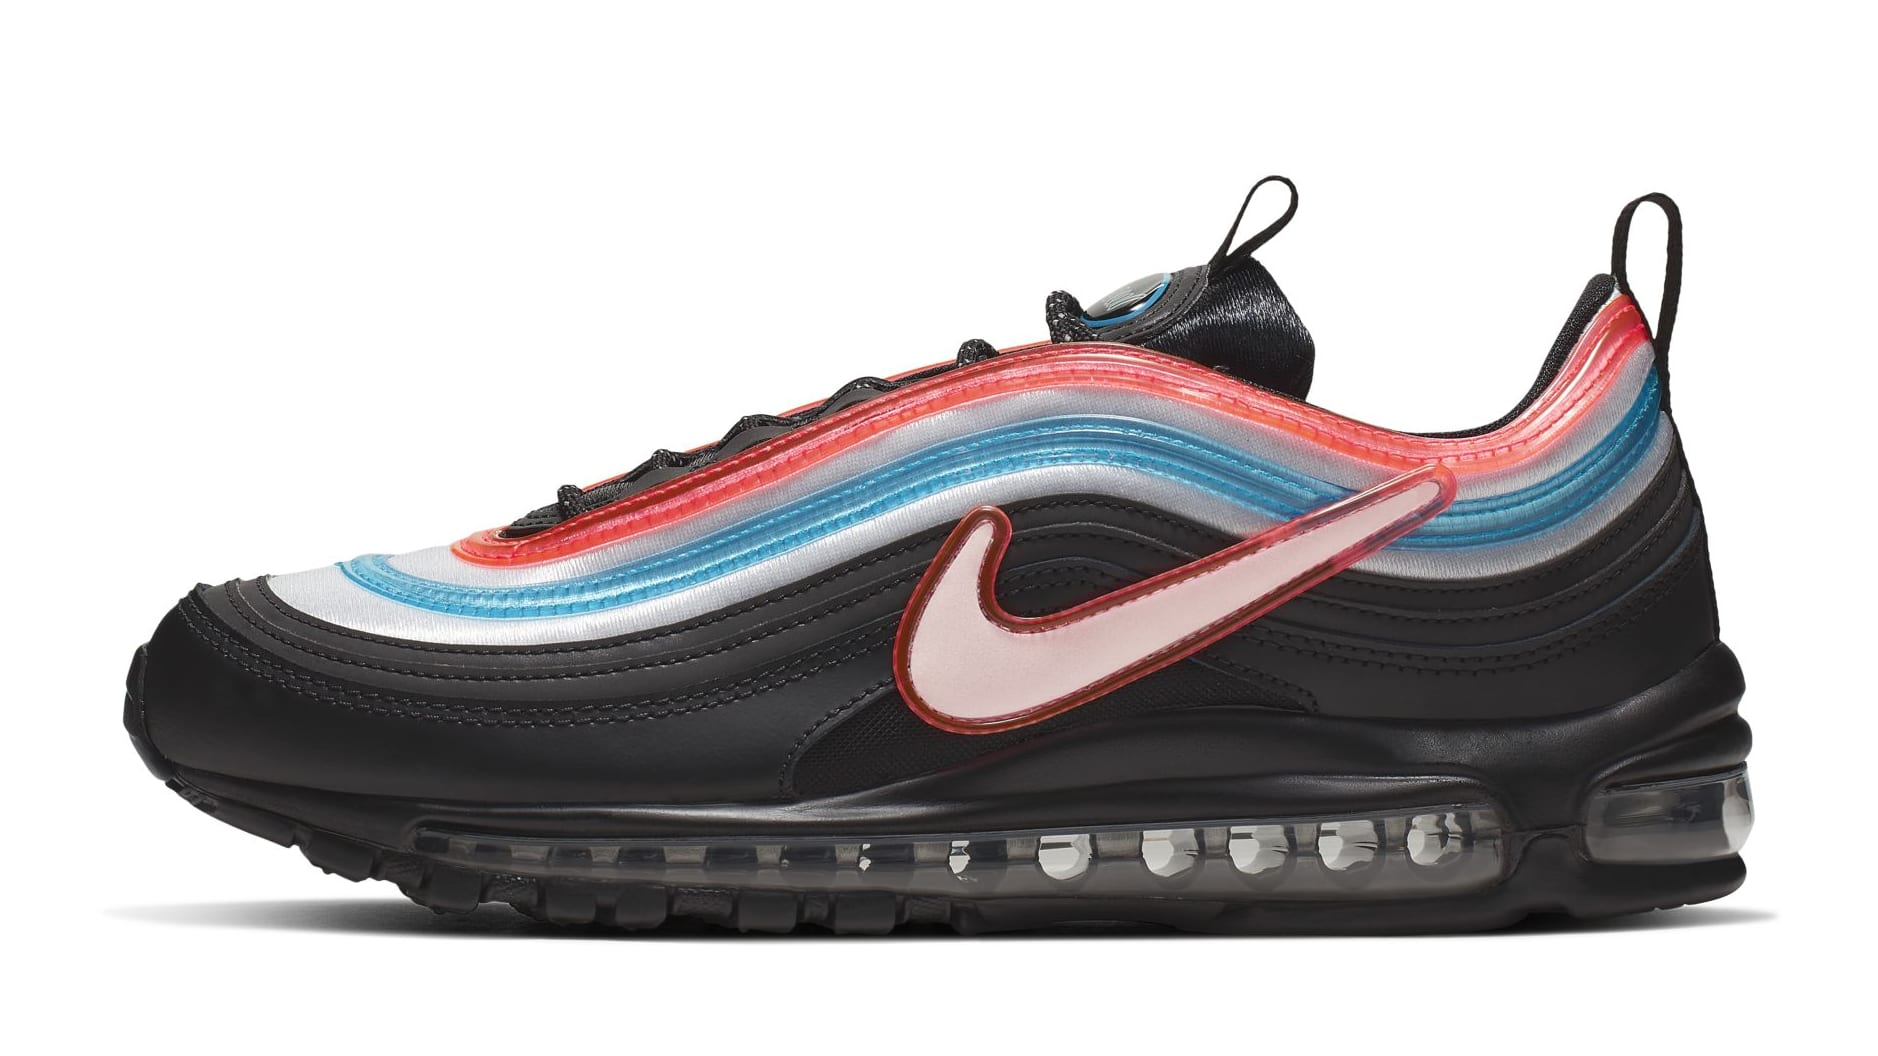 designer fashion 4b9c5 7fa1a Nike Air Max 97  Neon Seoul  Lateral